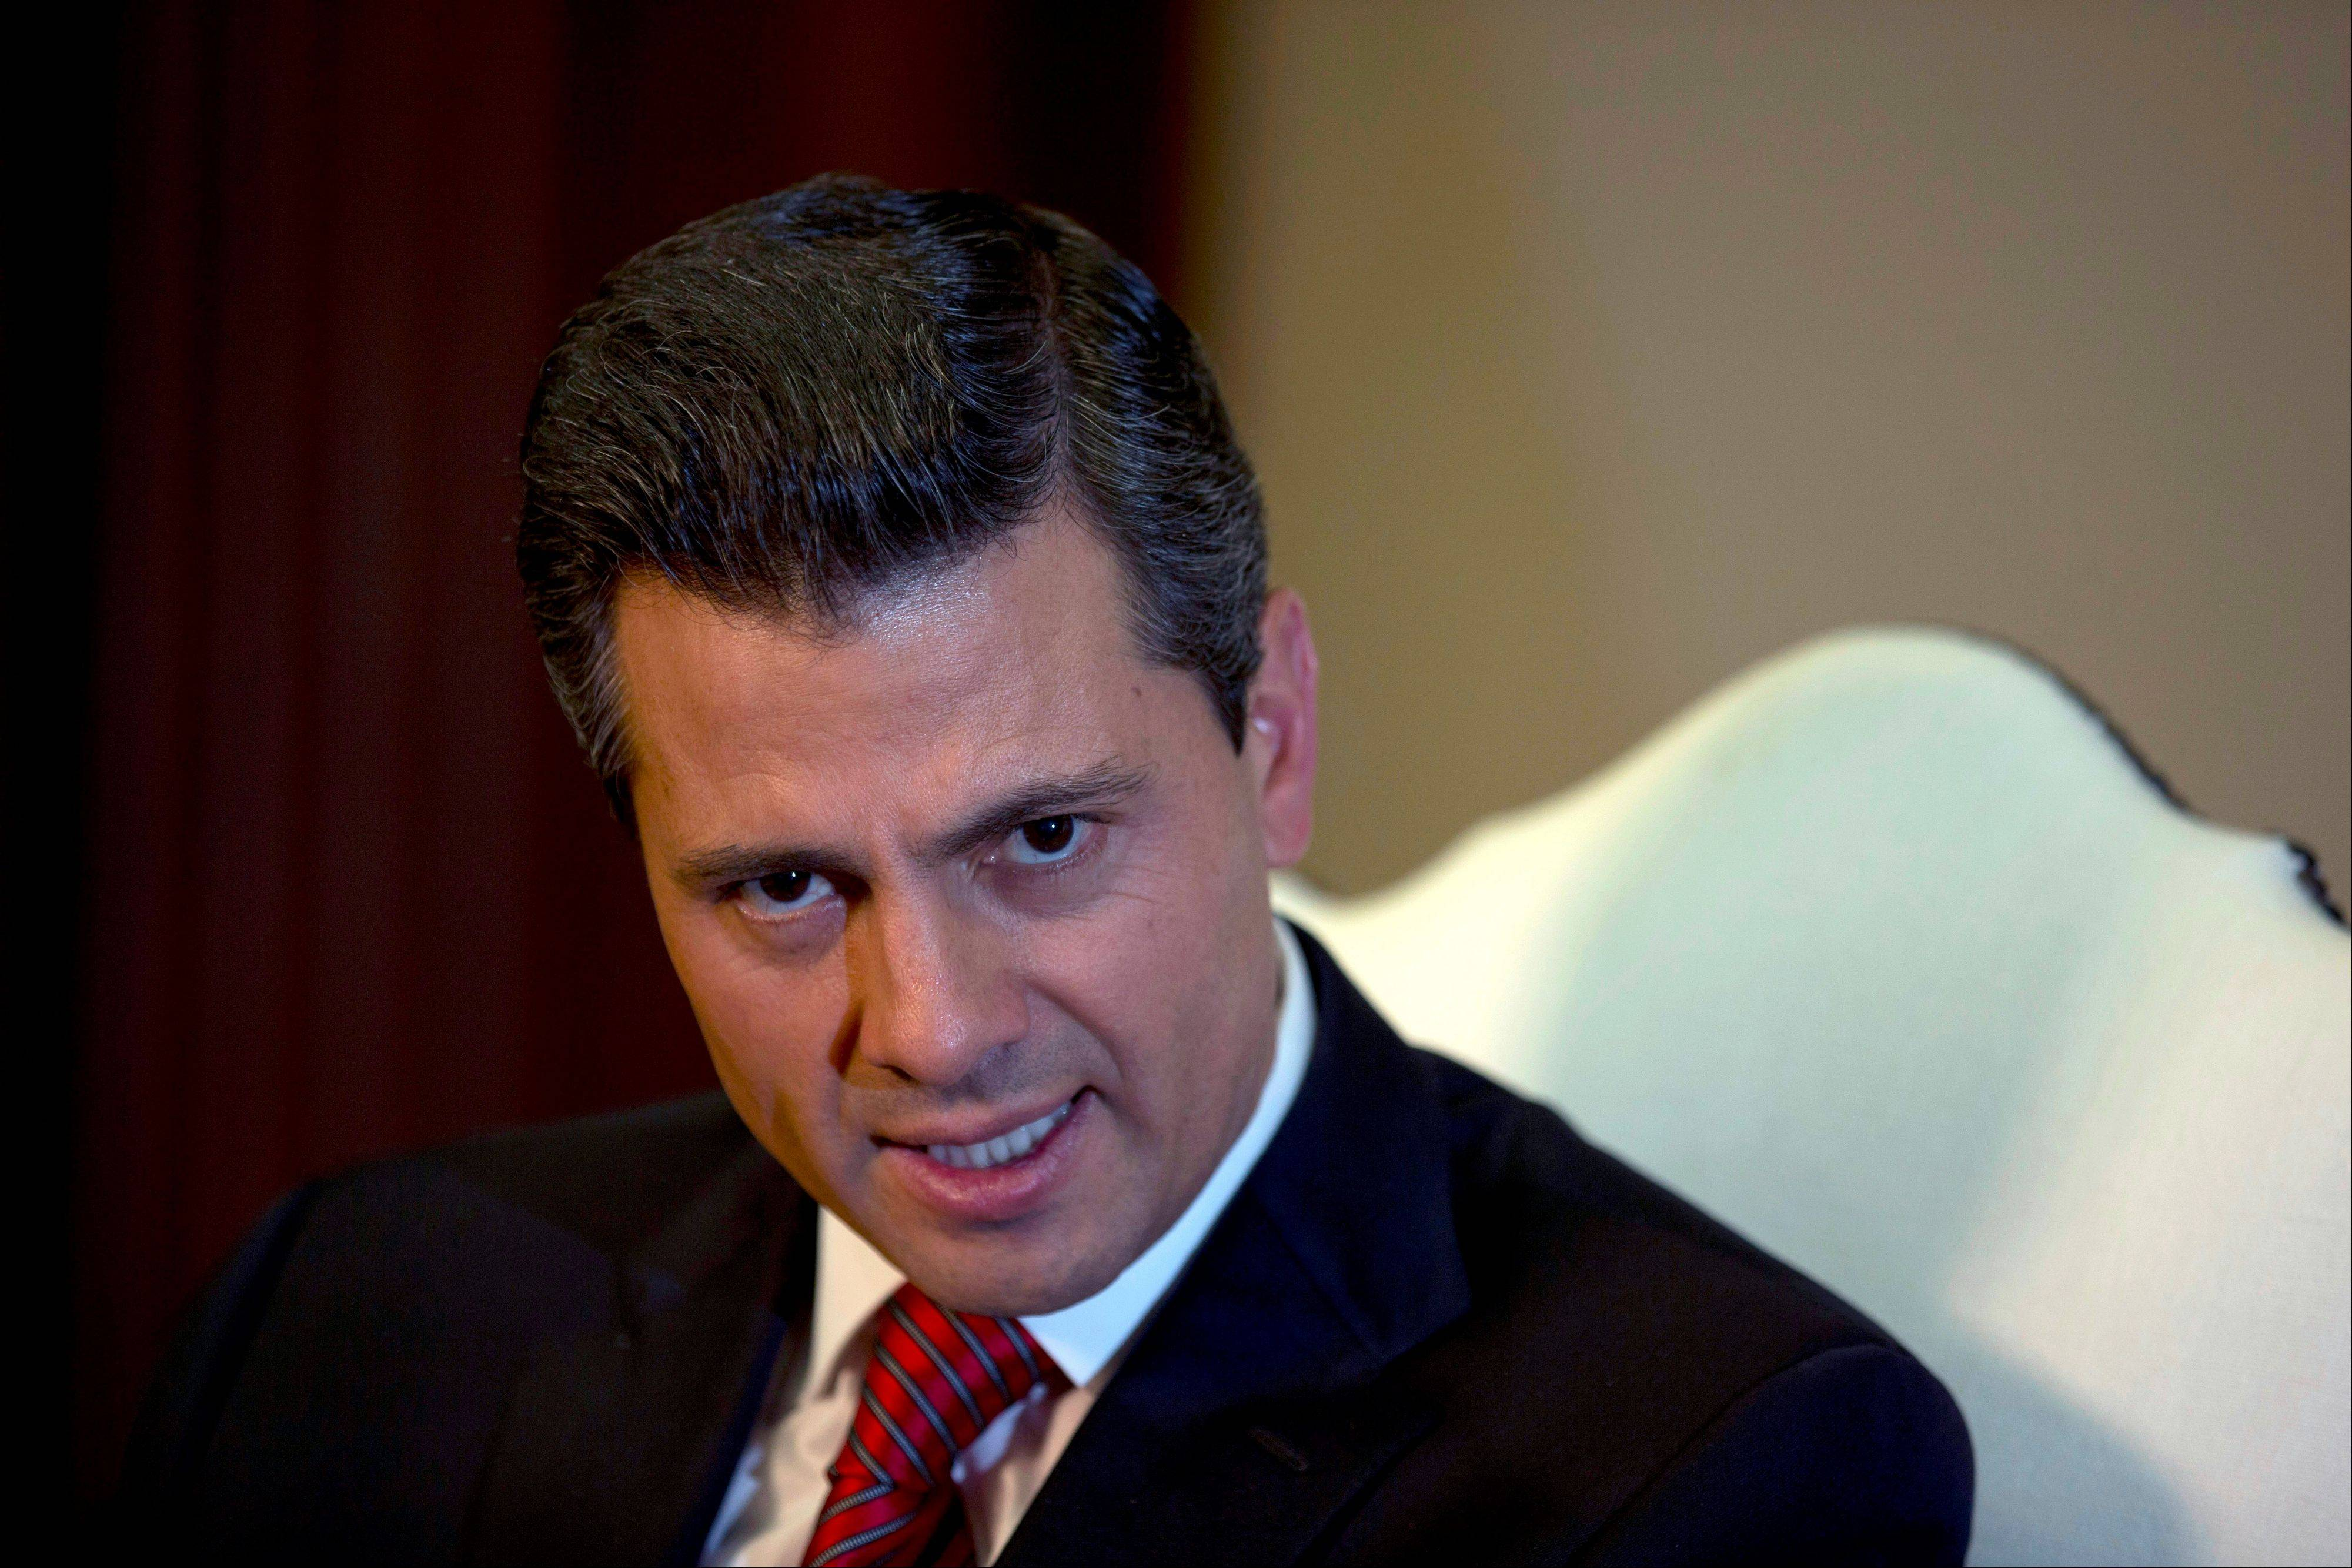 Enrique Pena Nieto speaks during an interview with The Associated Press at the Los Pinos presidential residence in Mexico City, Monday, Dec. 10, 2012. Pena Nieto says he�ll mount a �real fight� against production and trafficking of marijuana, despite its legalization in two U.S. states.